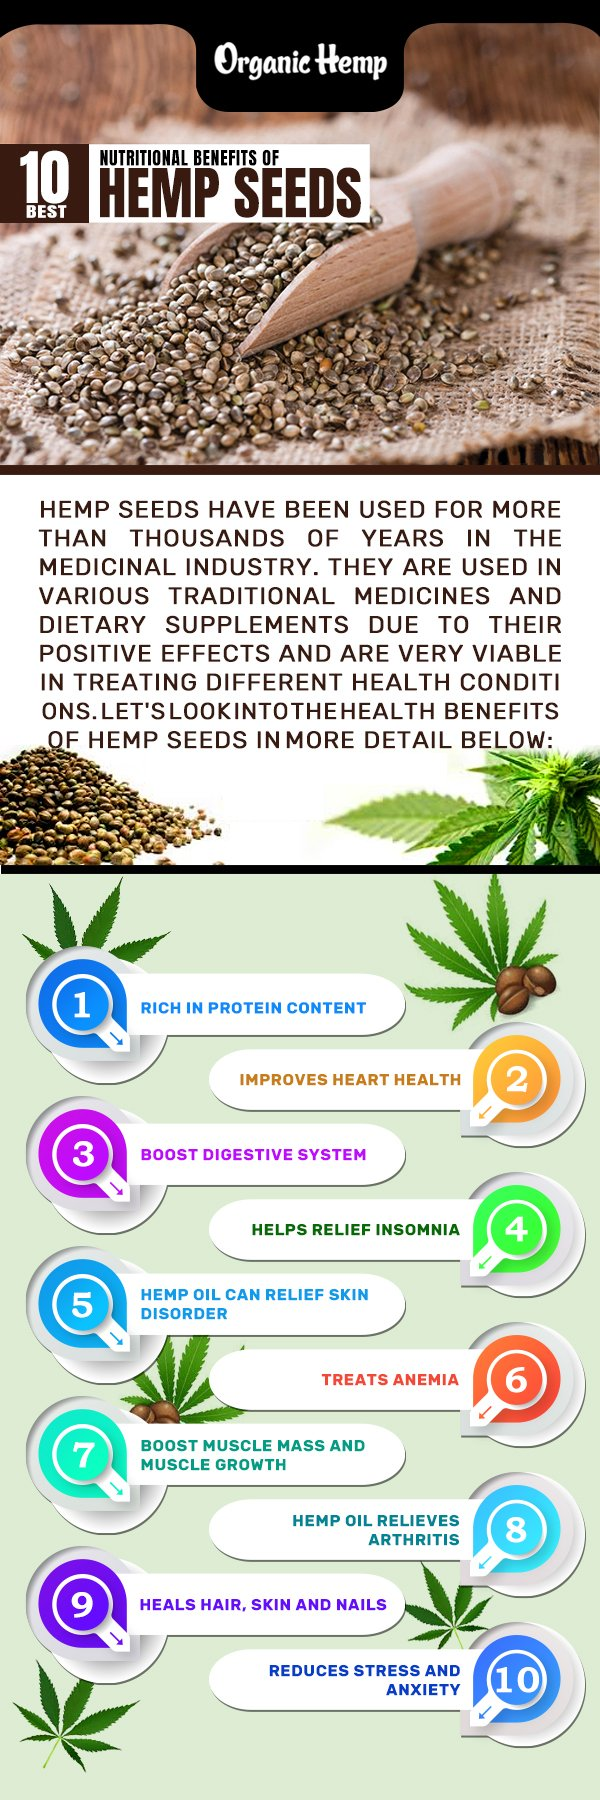 Everything You Should Know About Hemp Seeds Top 10 Nutritional Benefits The Open News